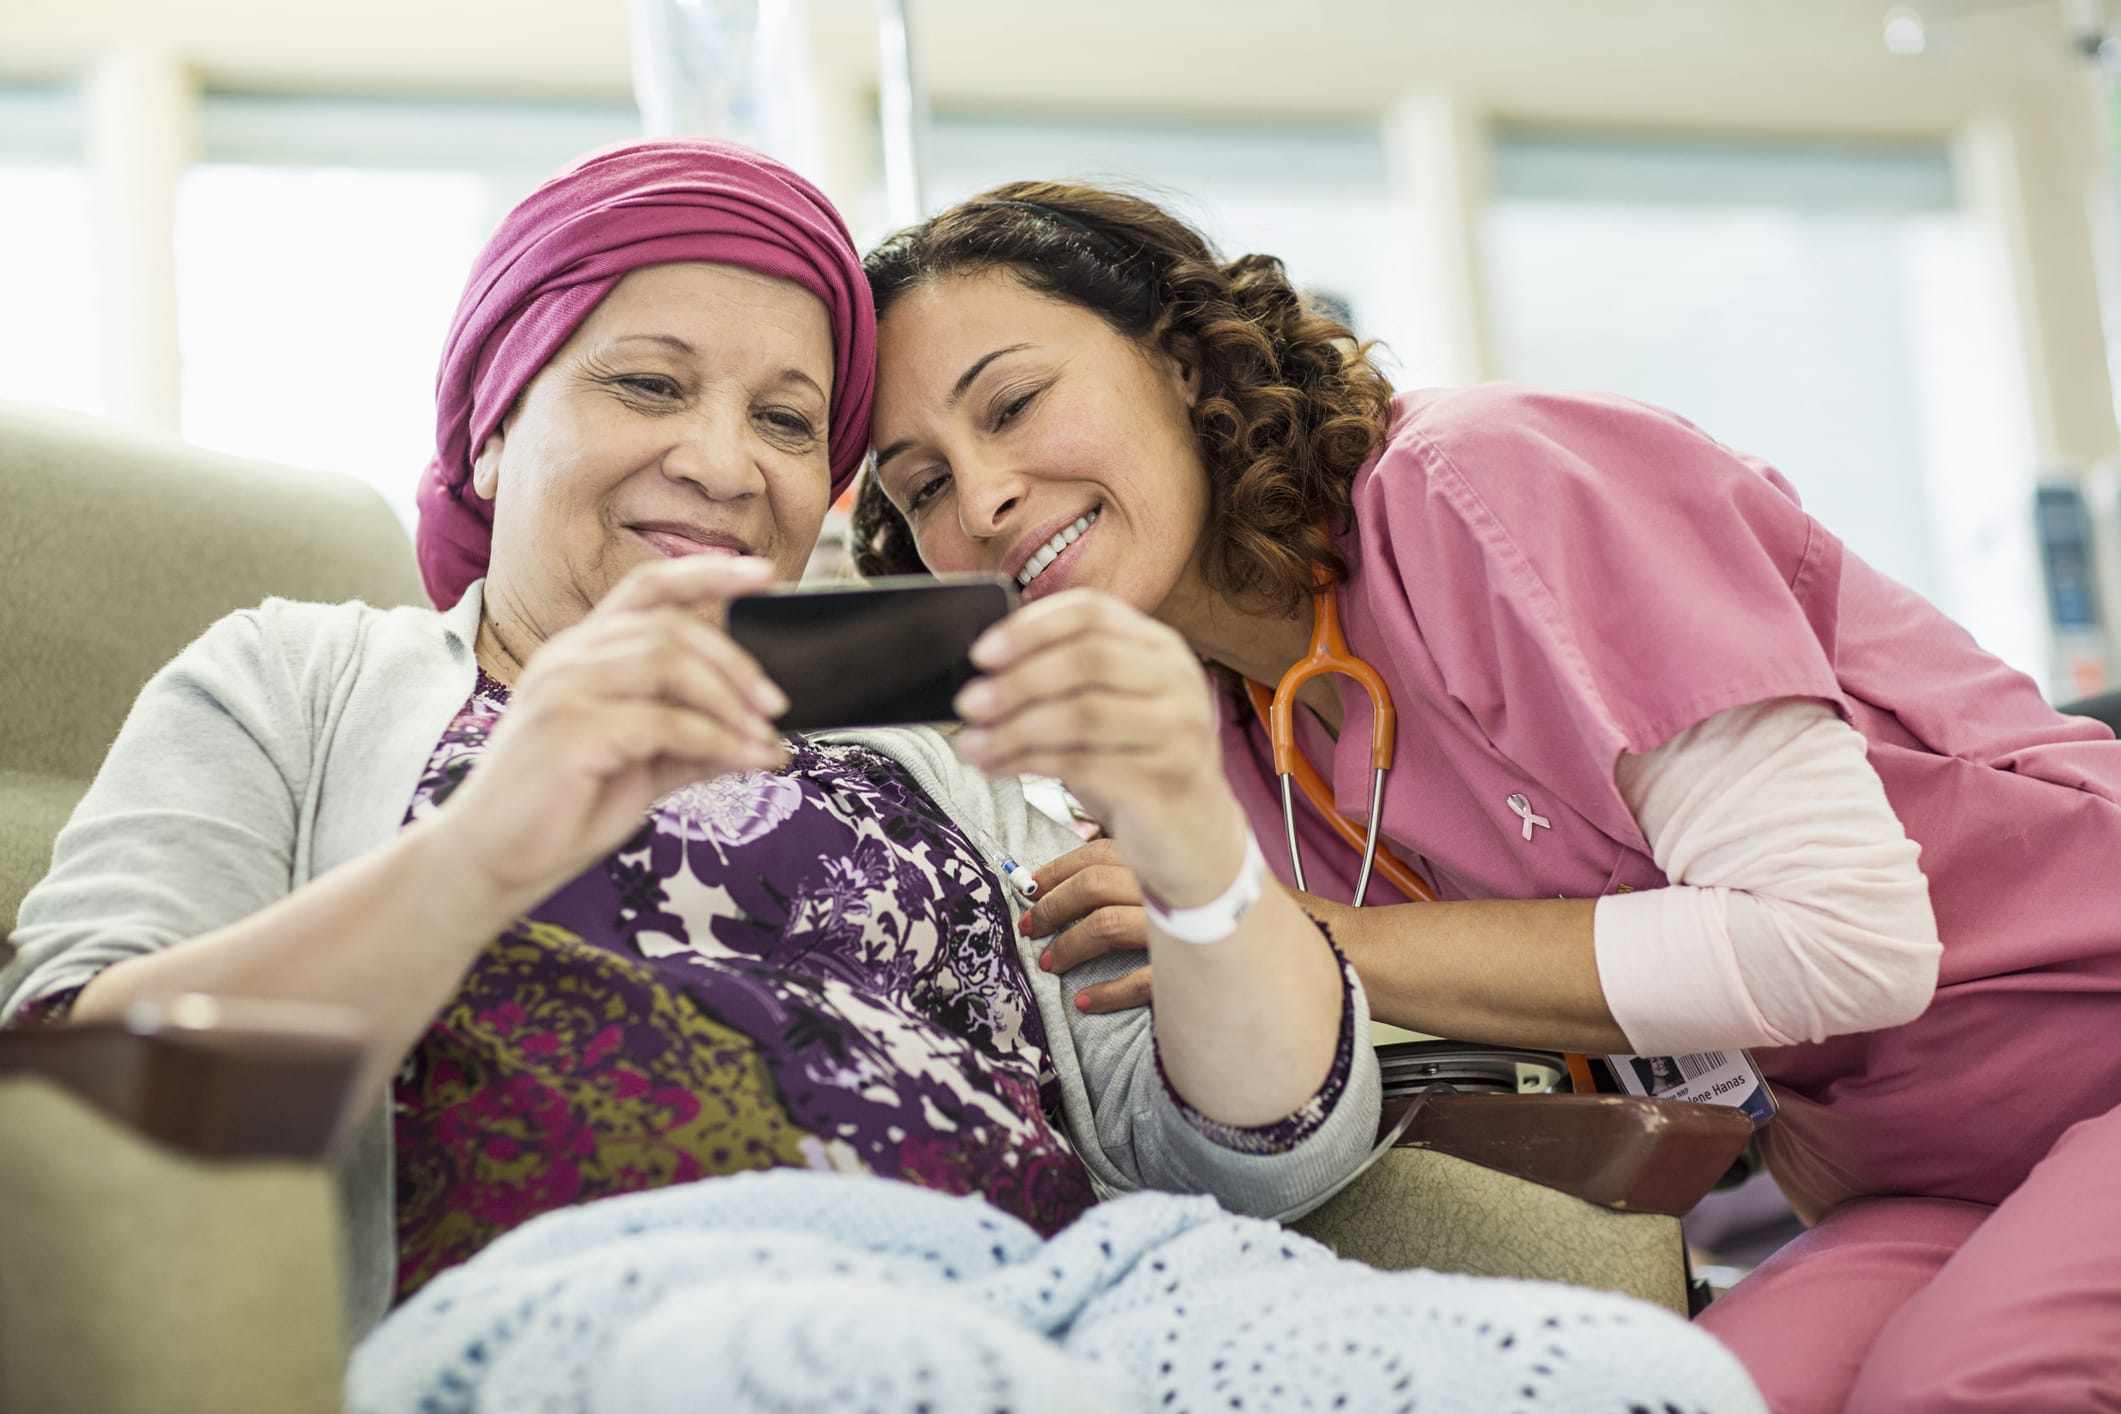 A patient receiving chemotherapy and a cancer treatment specialist smile as they look at photos on a phone together